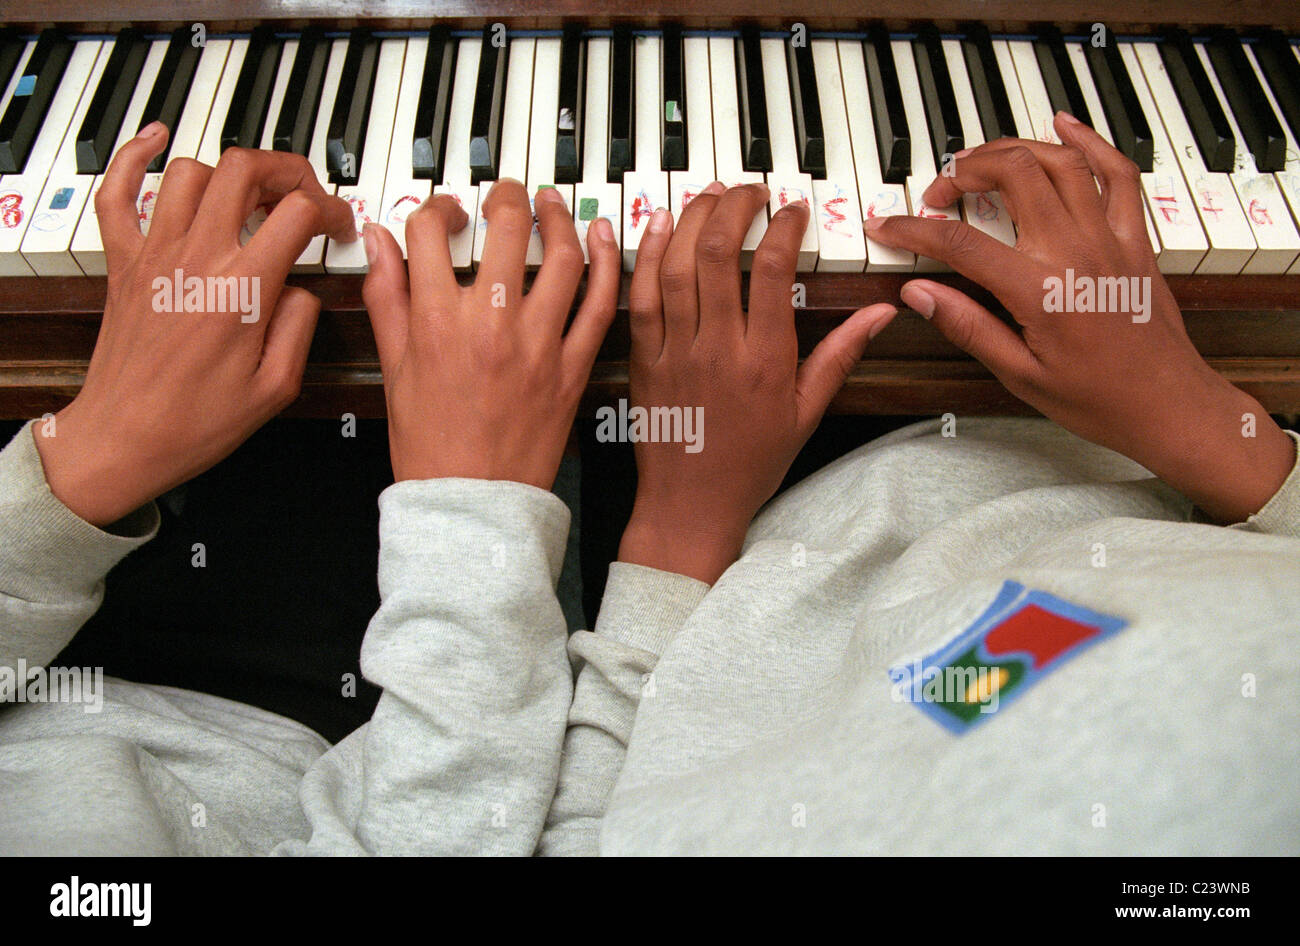 Two Pupils playing duets on the piano at school music lesson - Stock Image